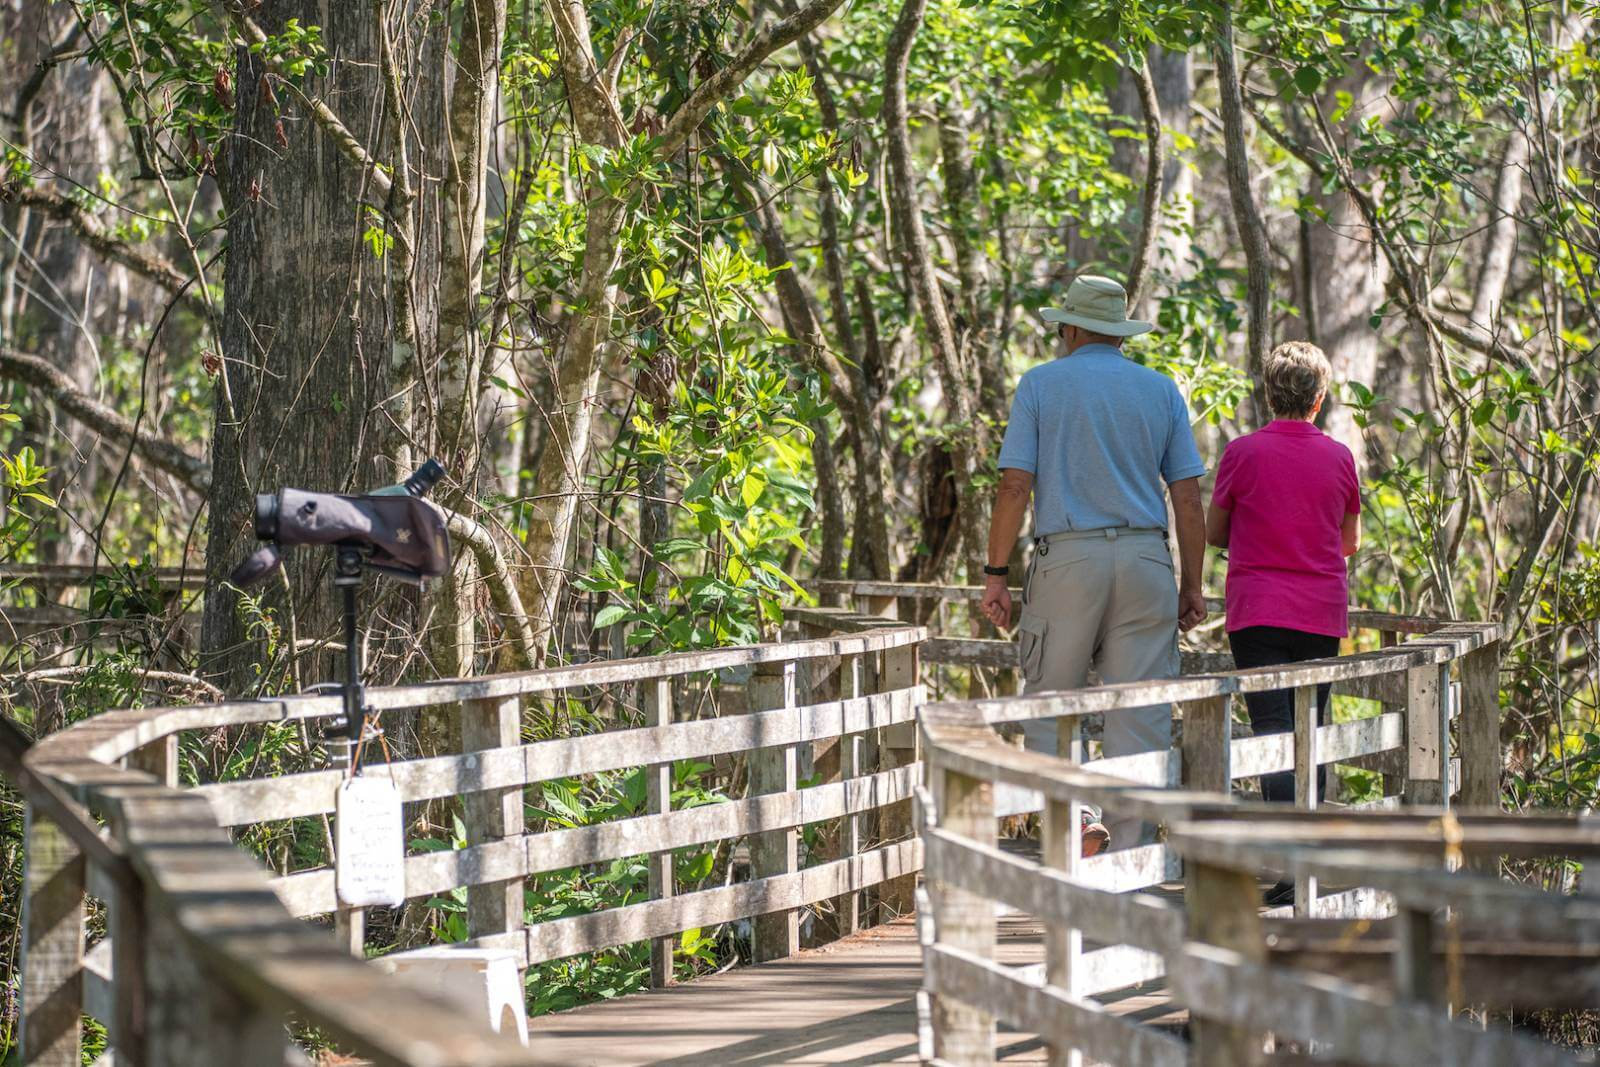 Expect many opportunities to see wildlife and great birding at Audubon Corkscrew Swamp in Naples, Florida. Photo by Jennifer Brinkman | Must Do Visitor Guides, MustDo.com